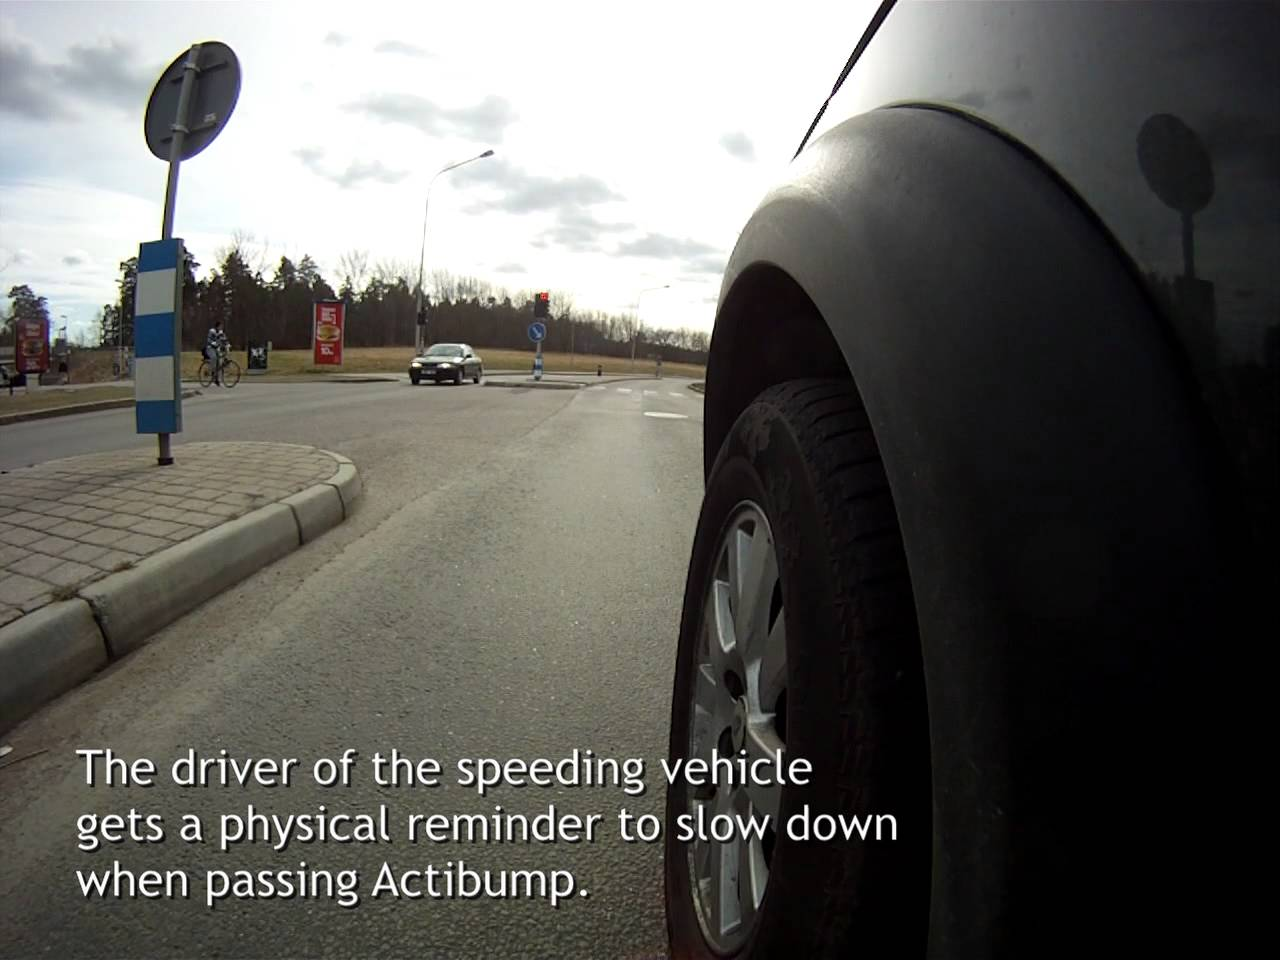 Swedish designed speed bumps are effective